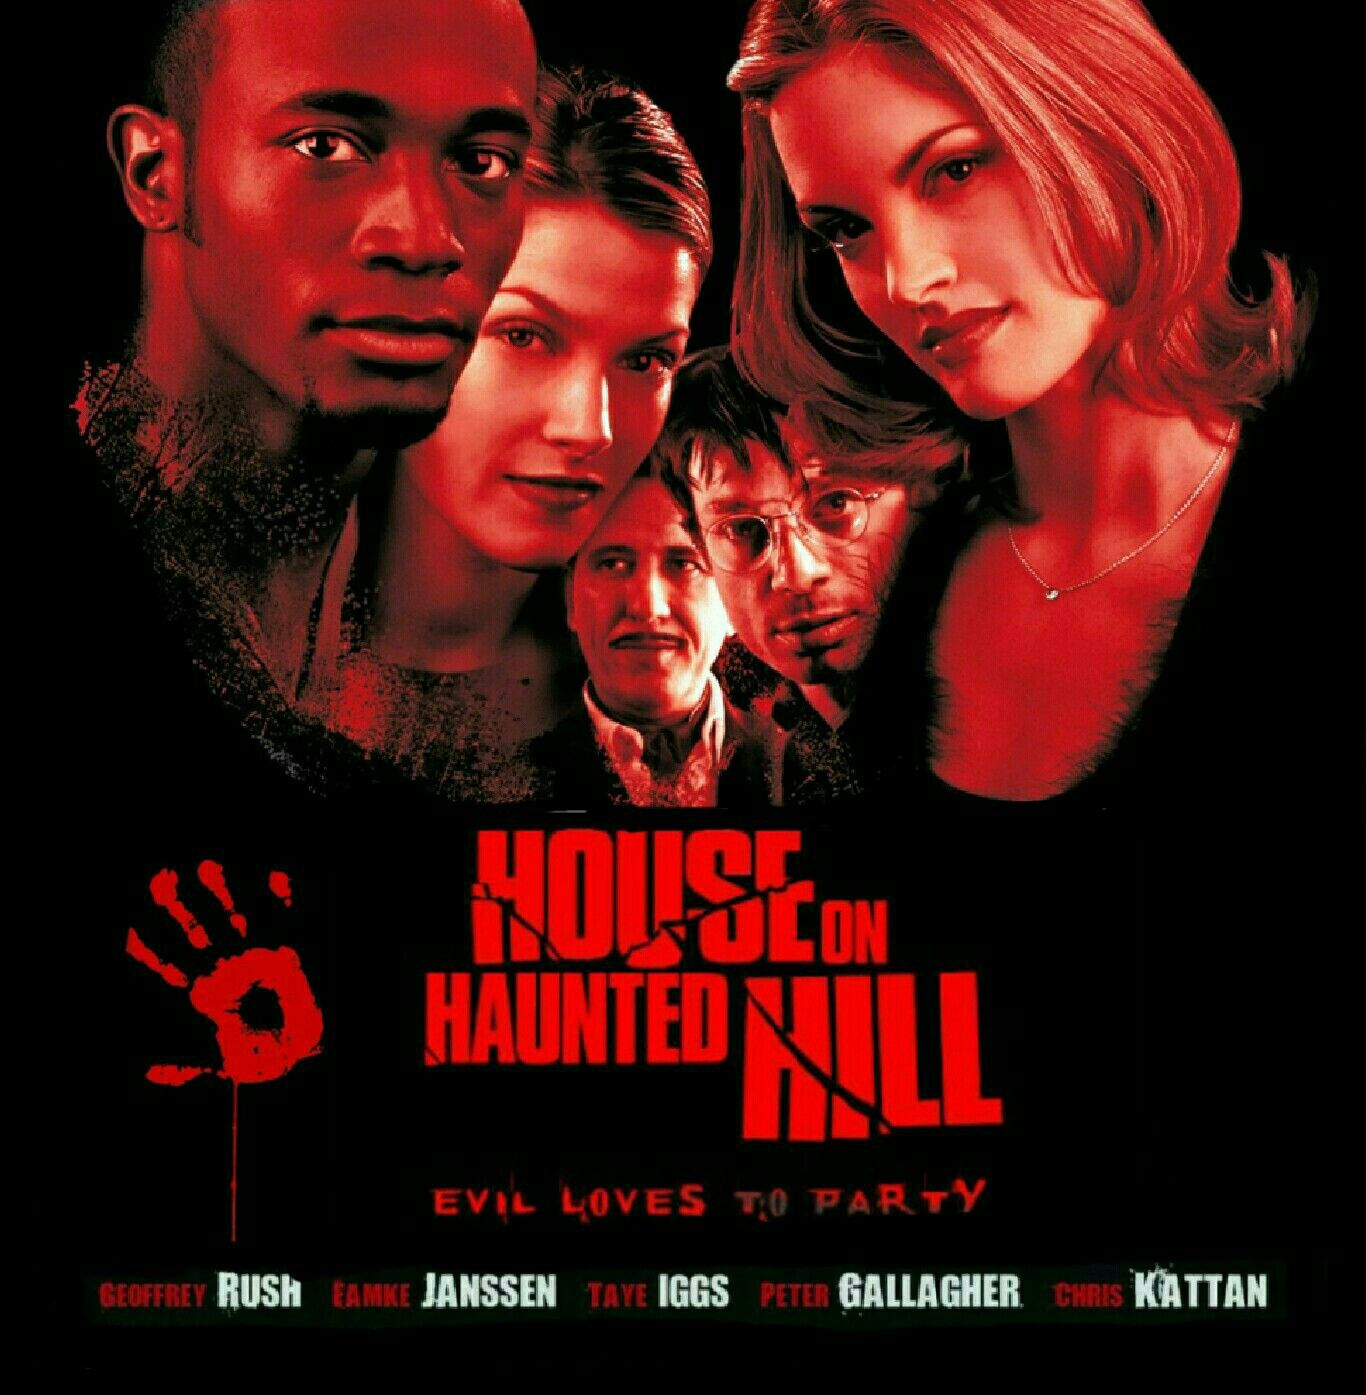 House On Haunted Hill 1999 Horror Movie   House on haunted hill ...